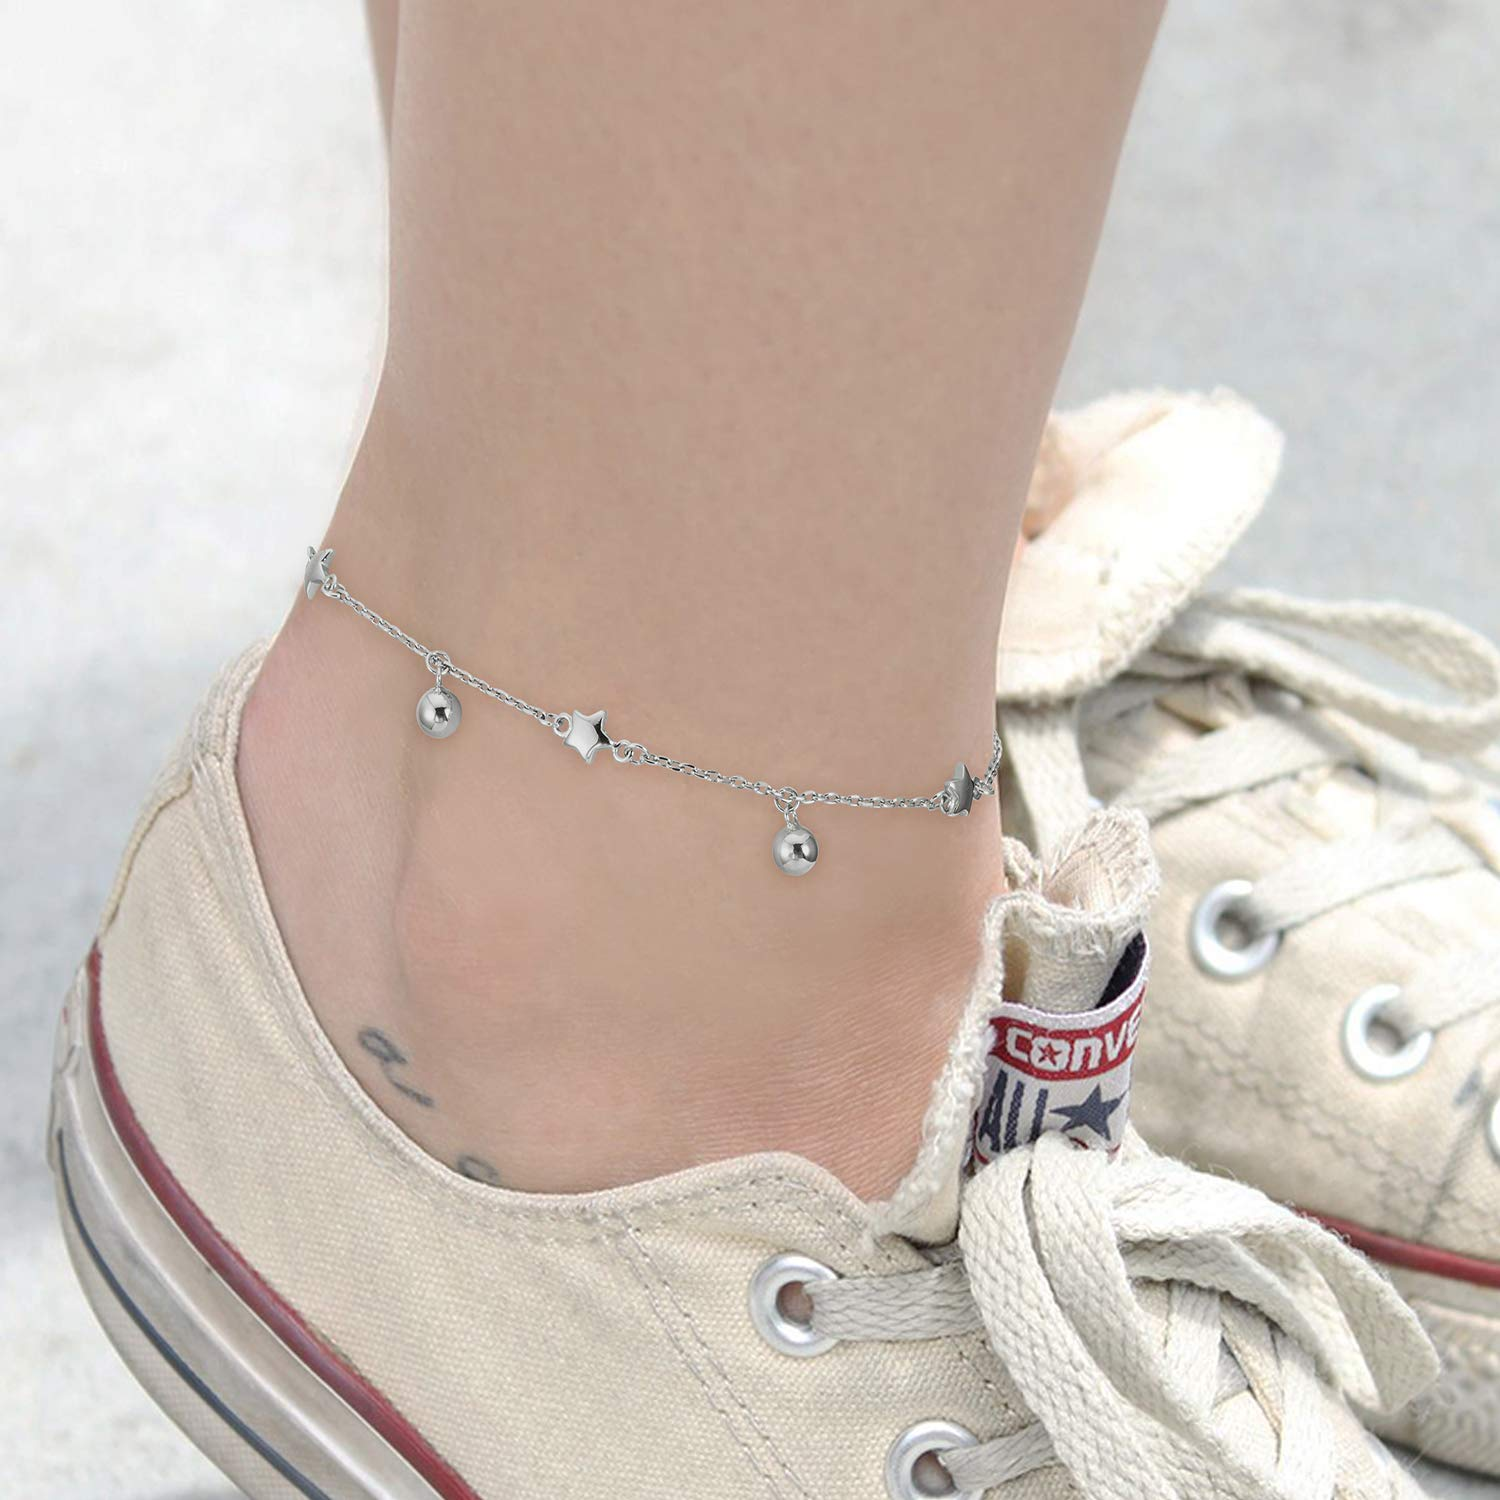 LINGBG Ball Bead Anklet S925 Sterling Silver Thin Cable Chain Adjustable Anklets for Women Girls Beach Style Bracelets Anklets Jewelry